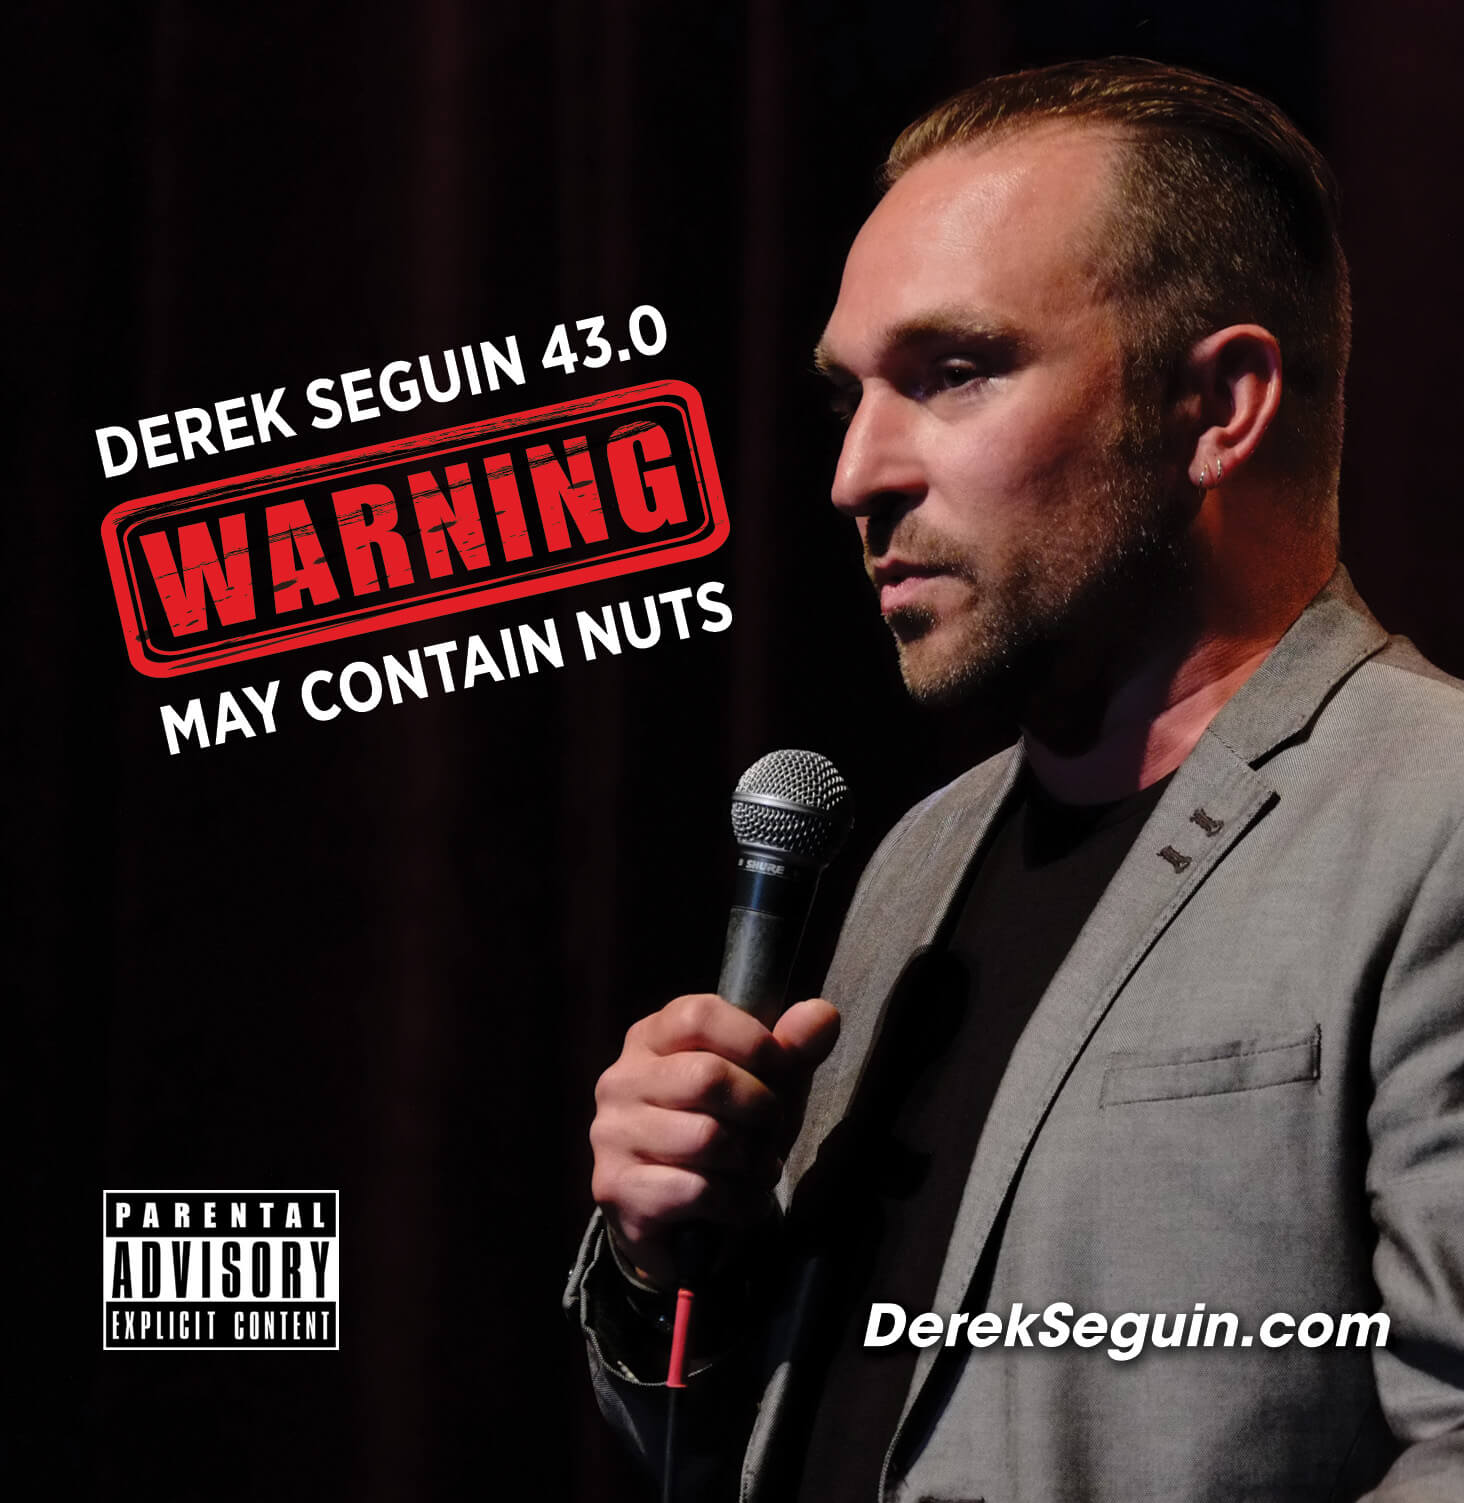 Derek Seguin 43.0 - Warning: May Contain Nuts